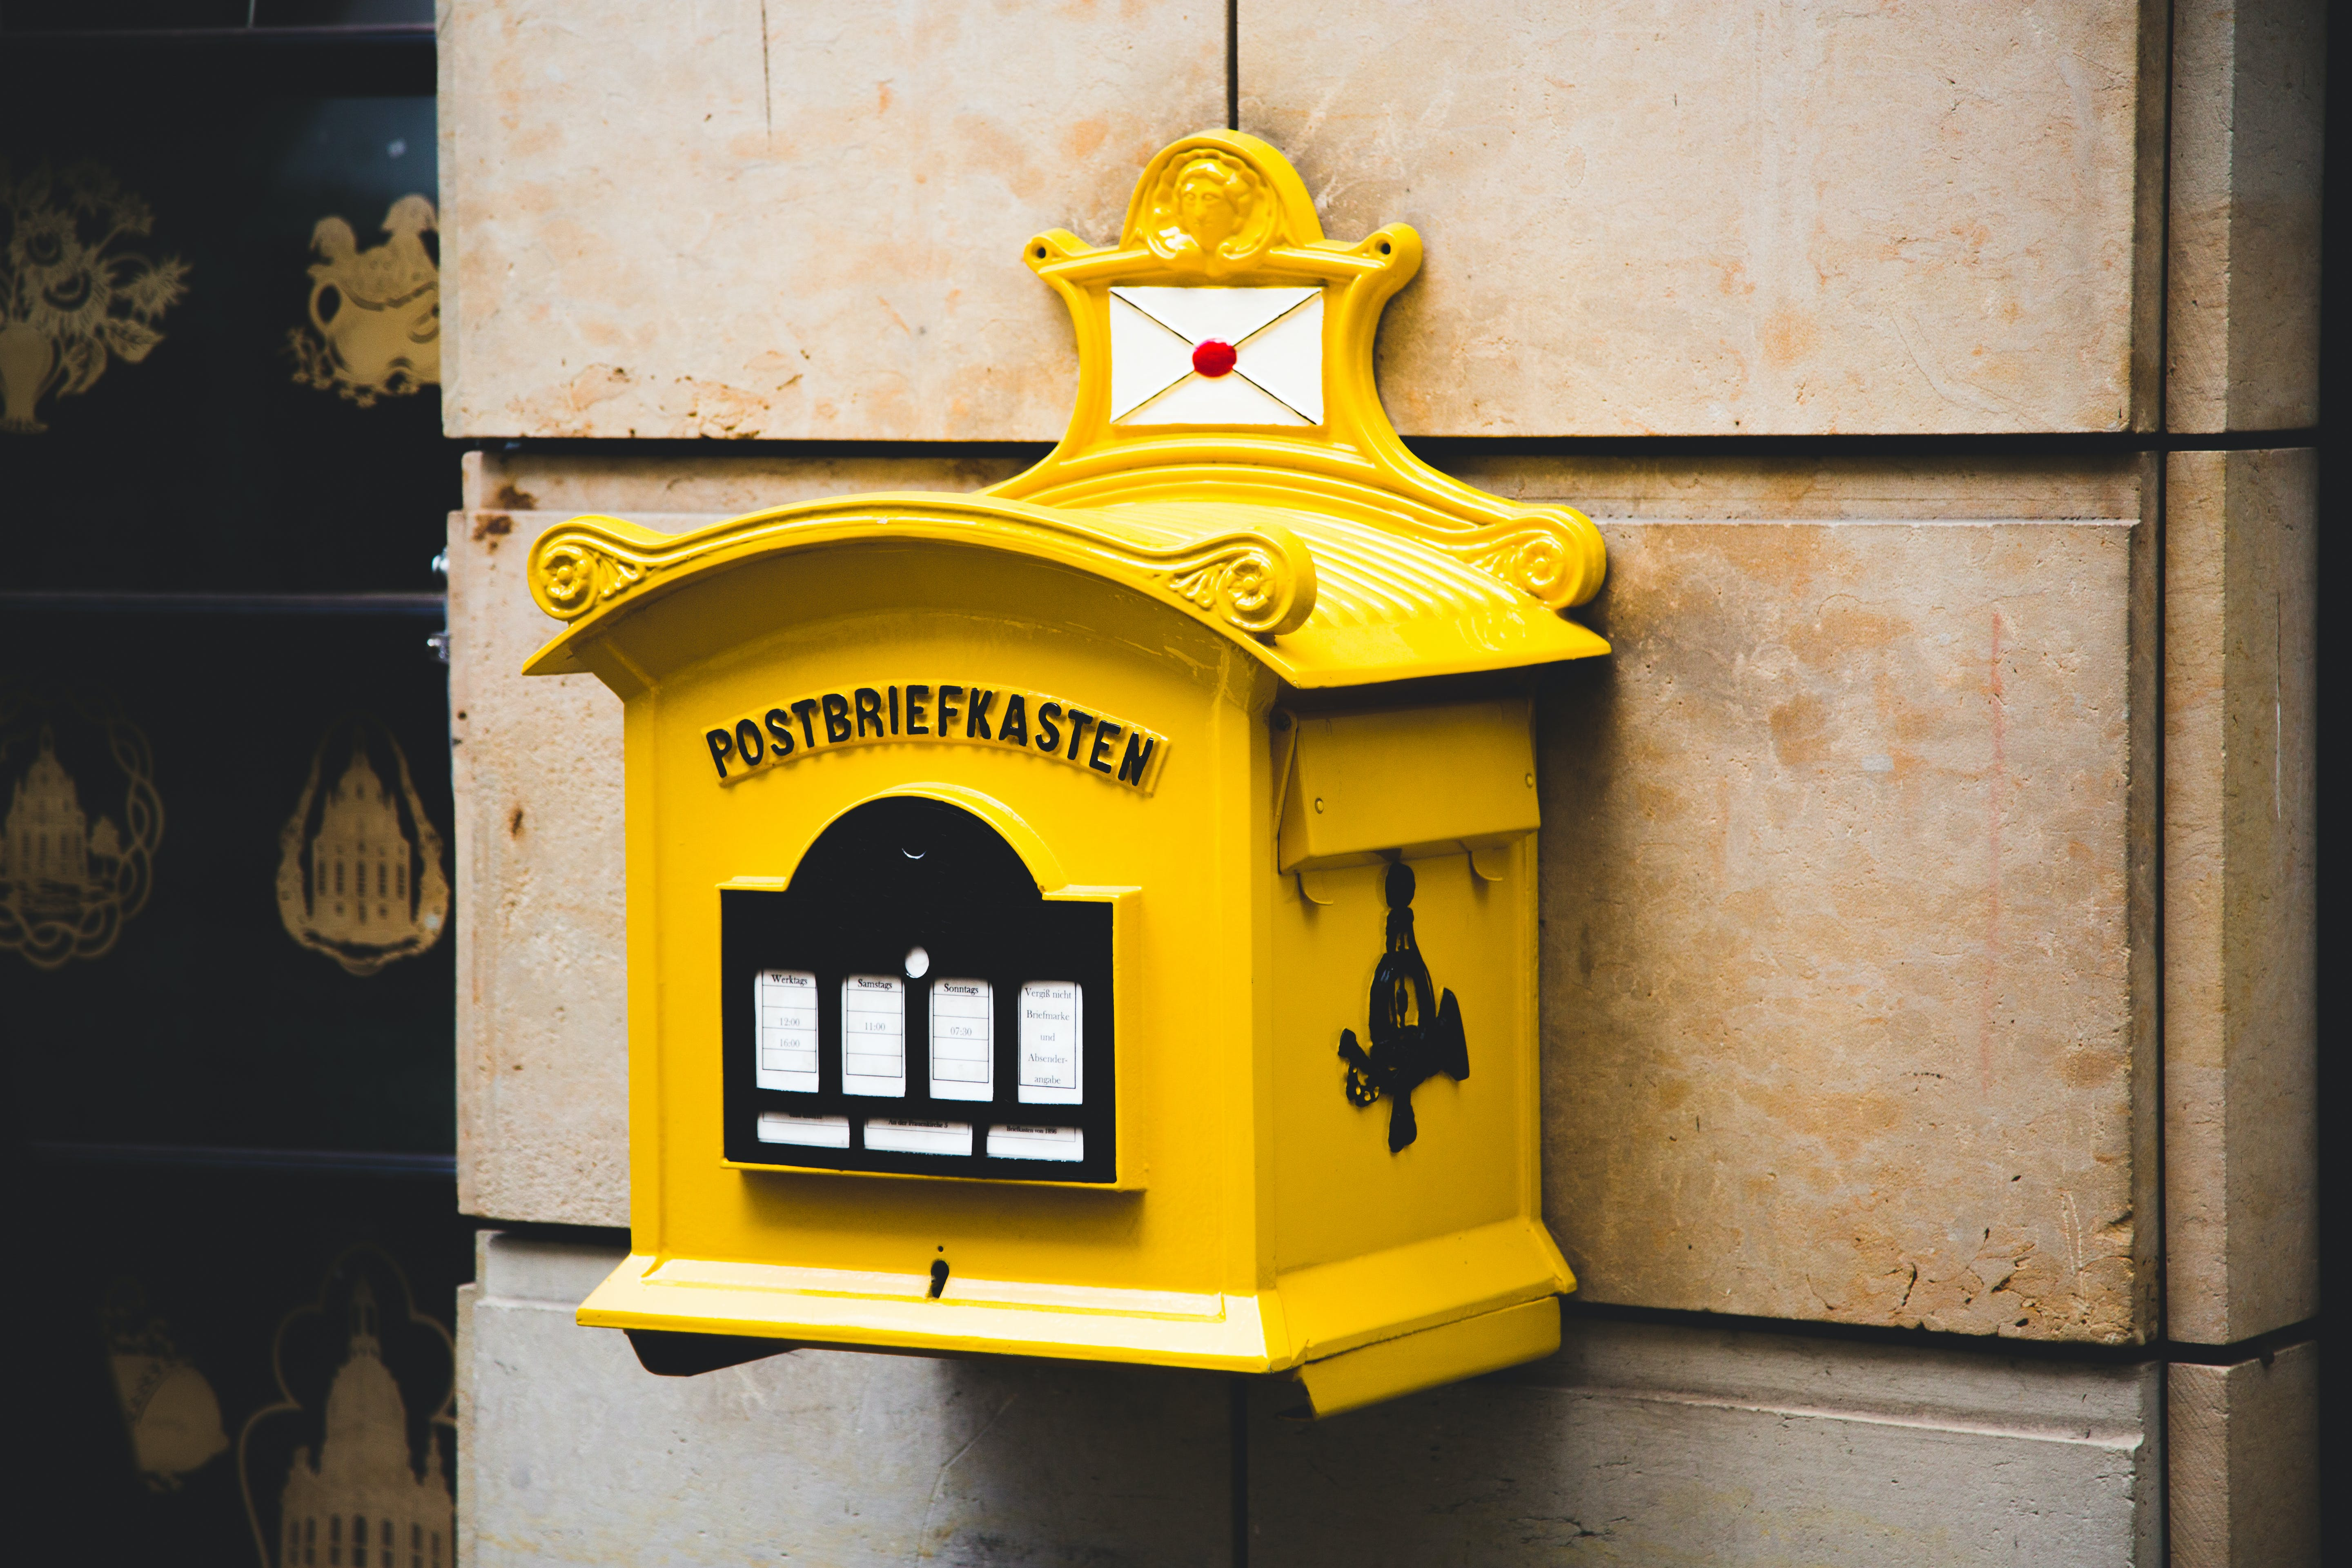 Yellow Postbriefkasten Floating Mailbox on Brown Concrete Wall